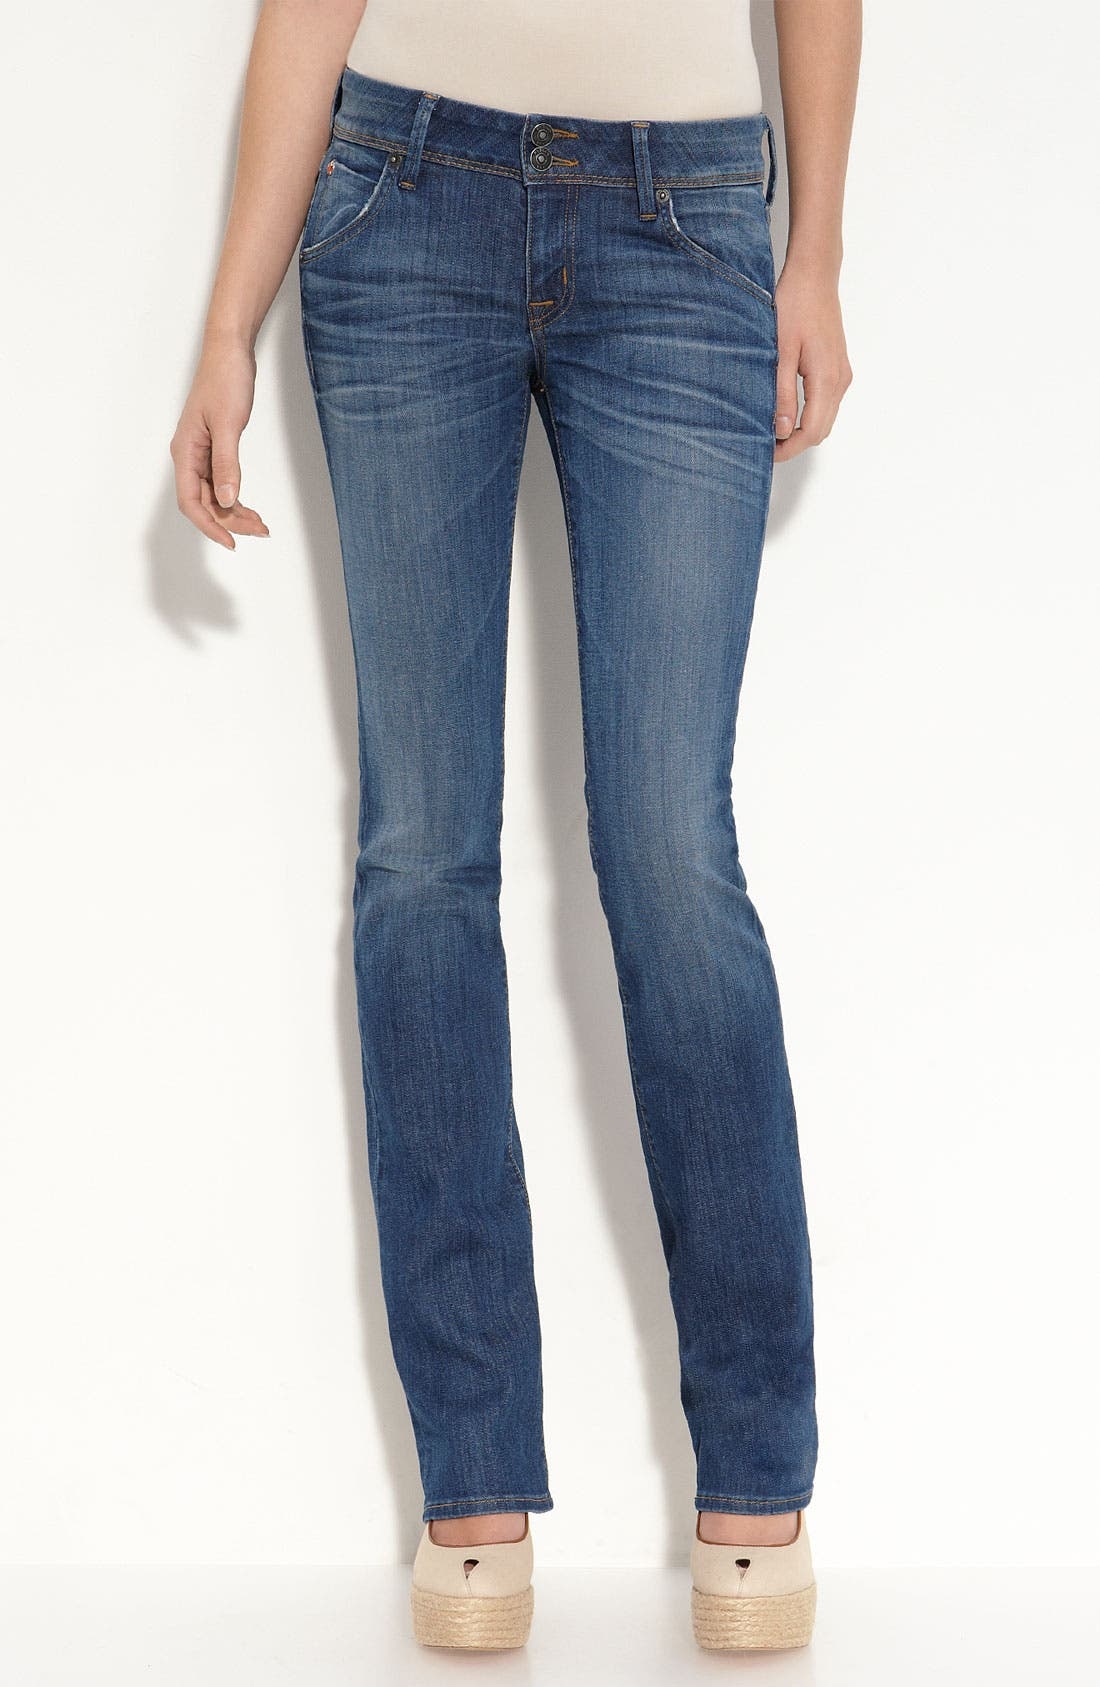 Main Image - Hudson Jeans 'Baby Boot' Bootcut Stretch Denim Jeans (I Want To)